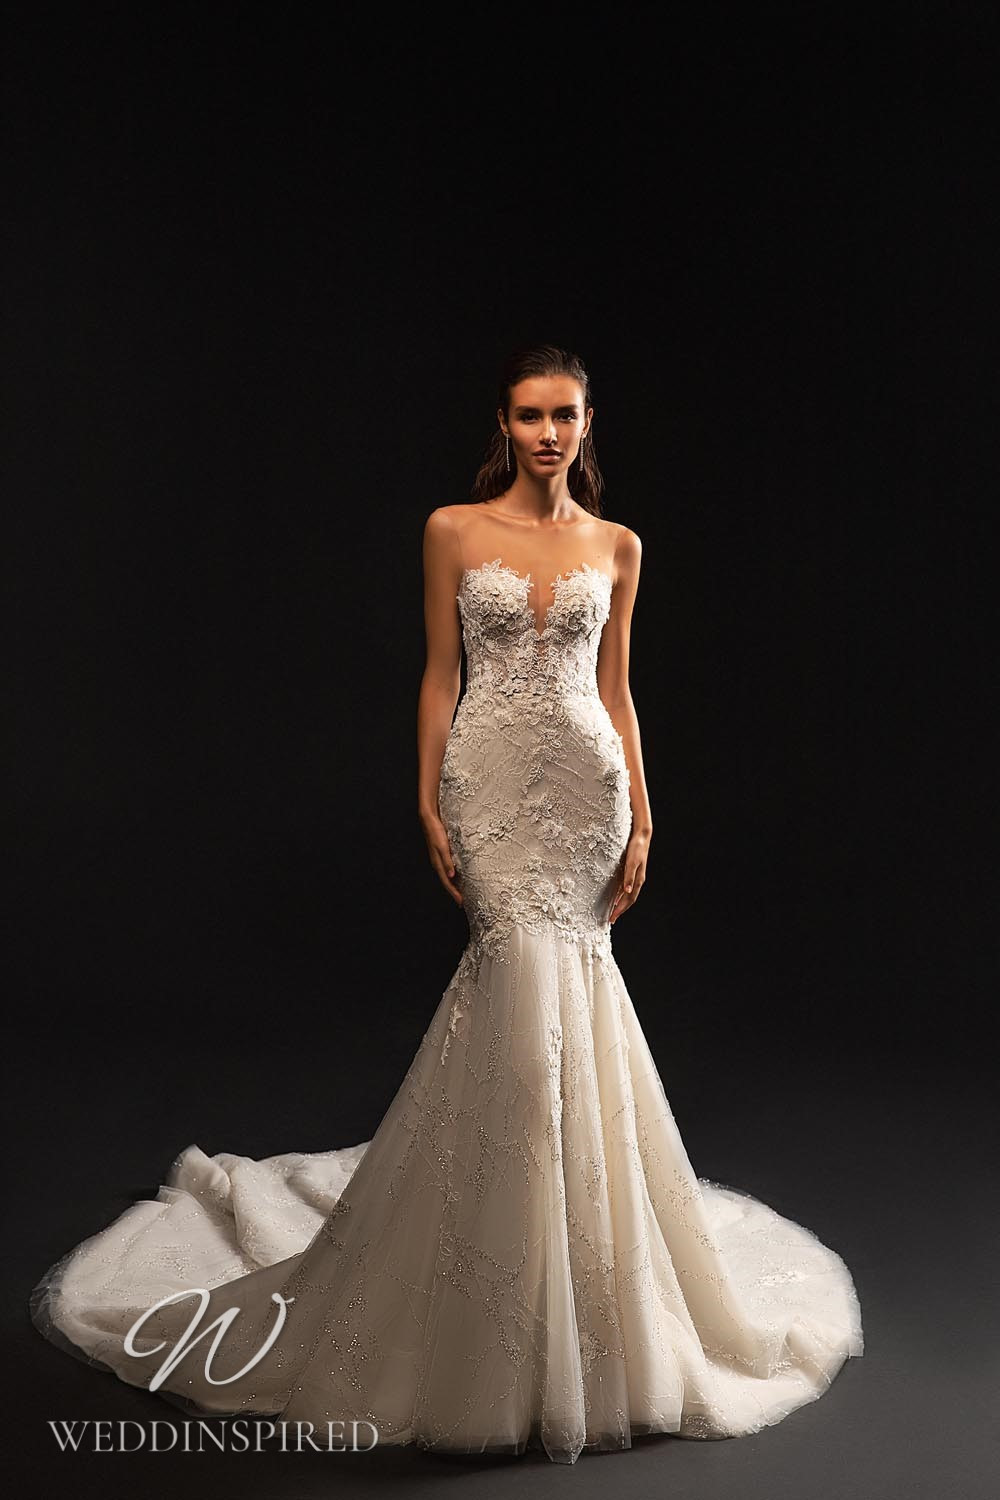 A WONÁ Concept 2021 strapless lace and tulle mermaid wedding dress